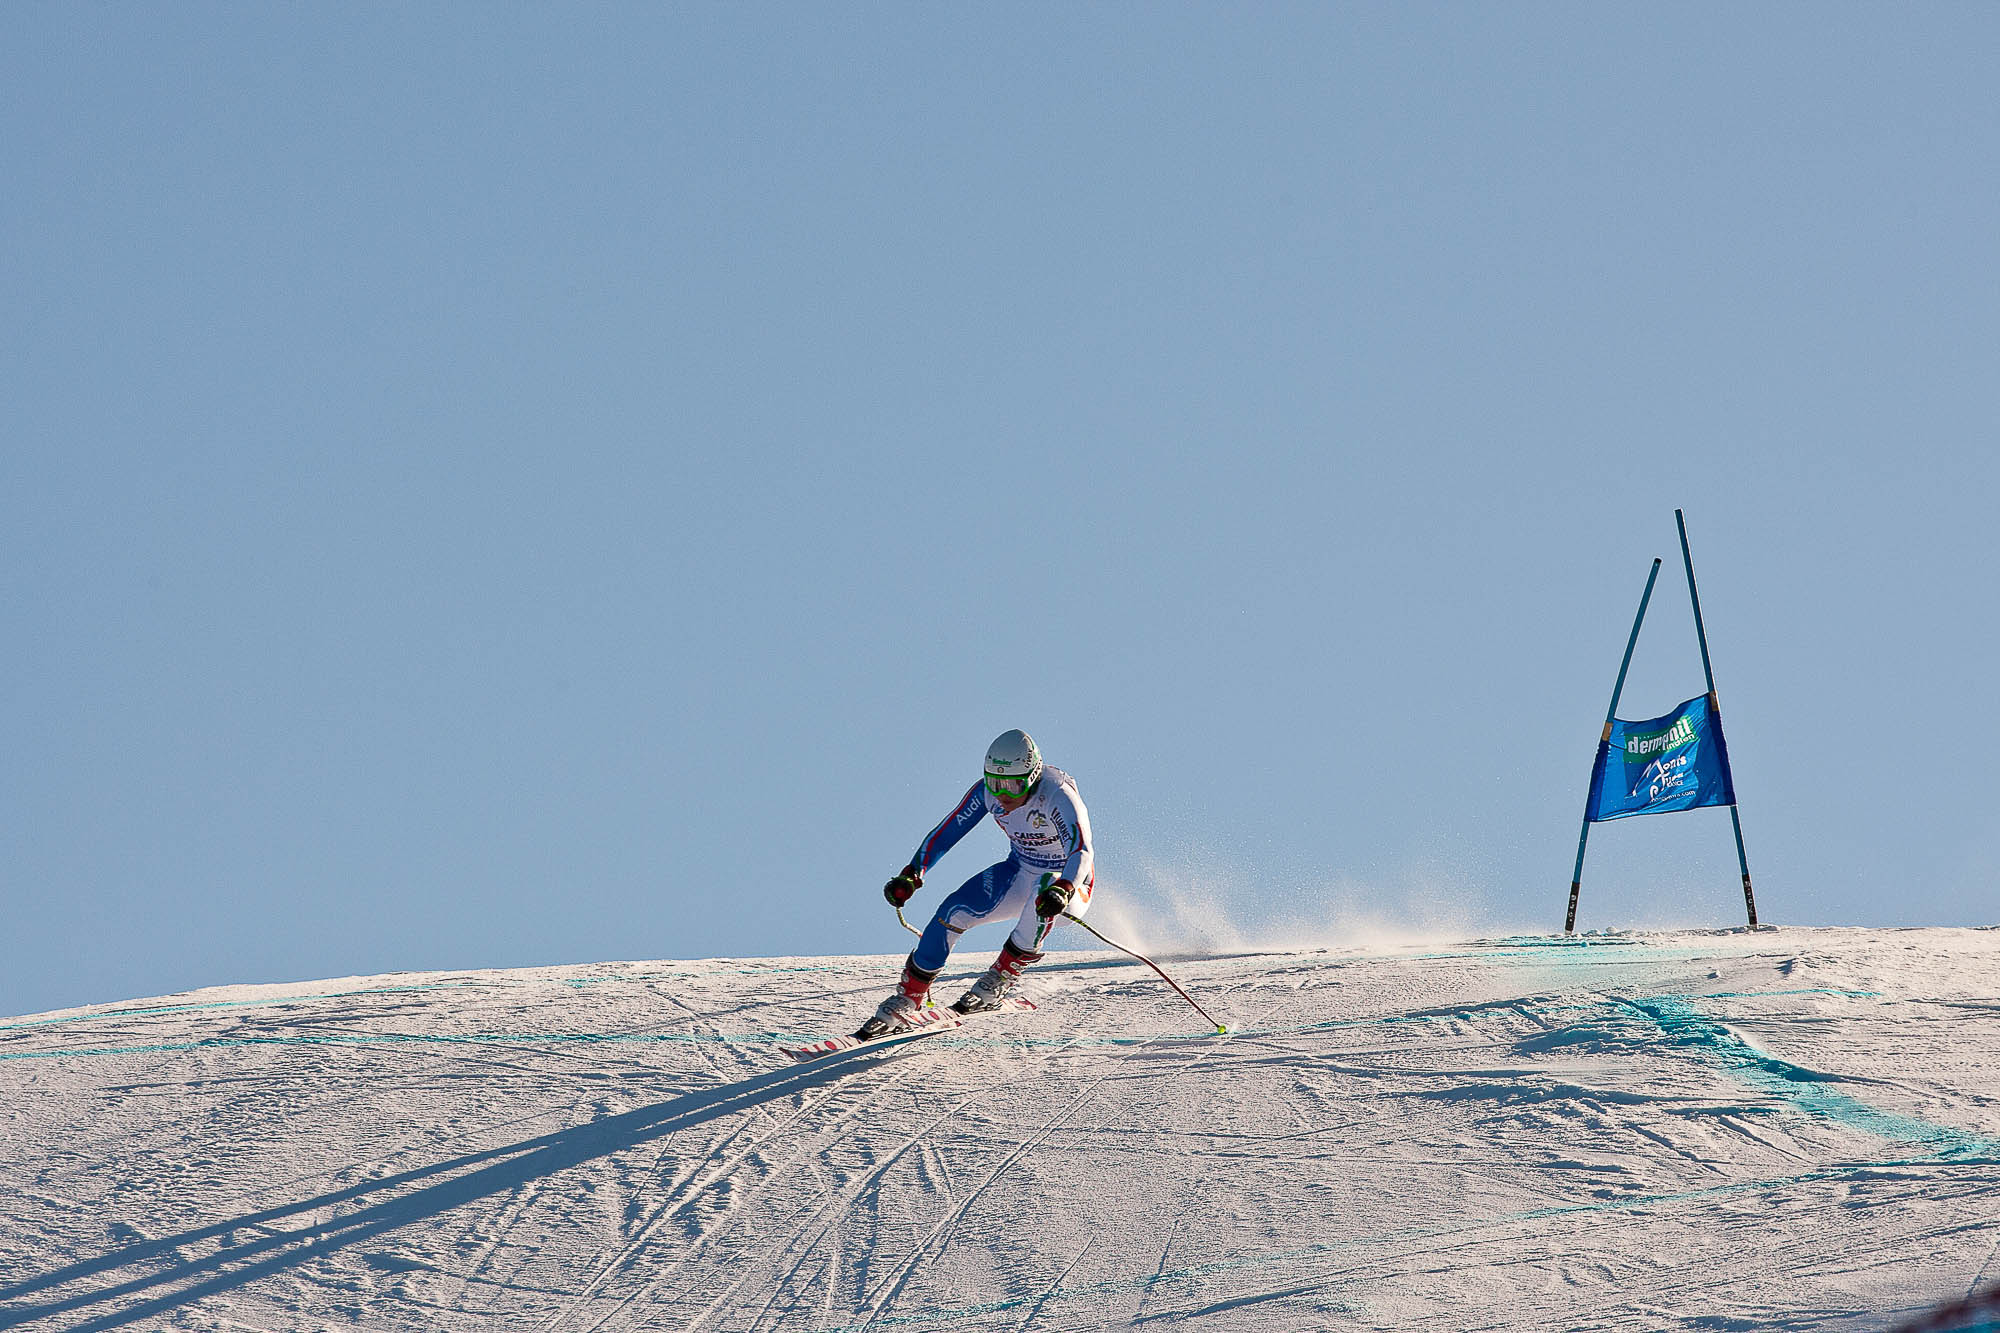 Coupe_Europe_ski_dames-53.jpg